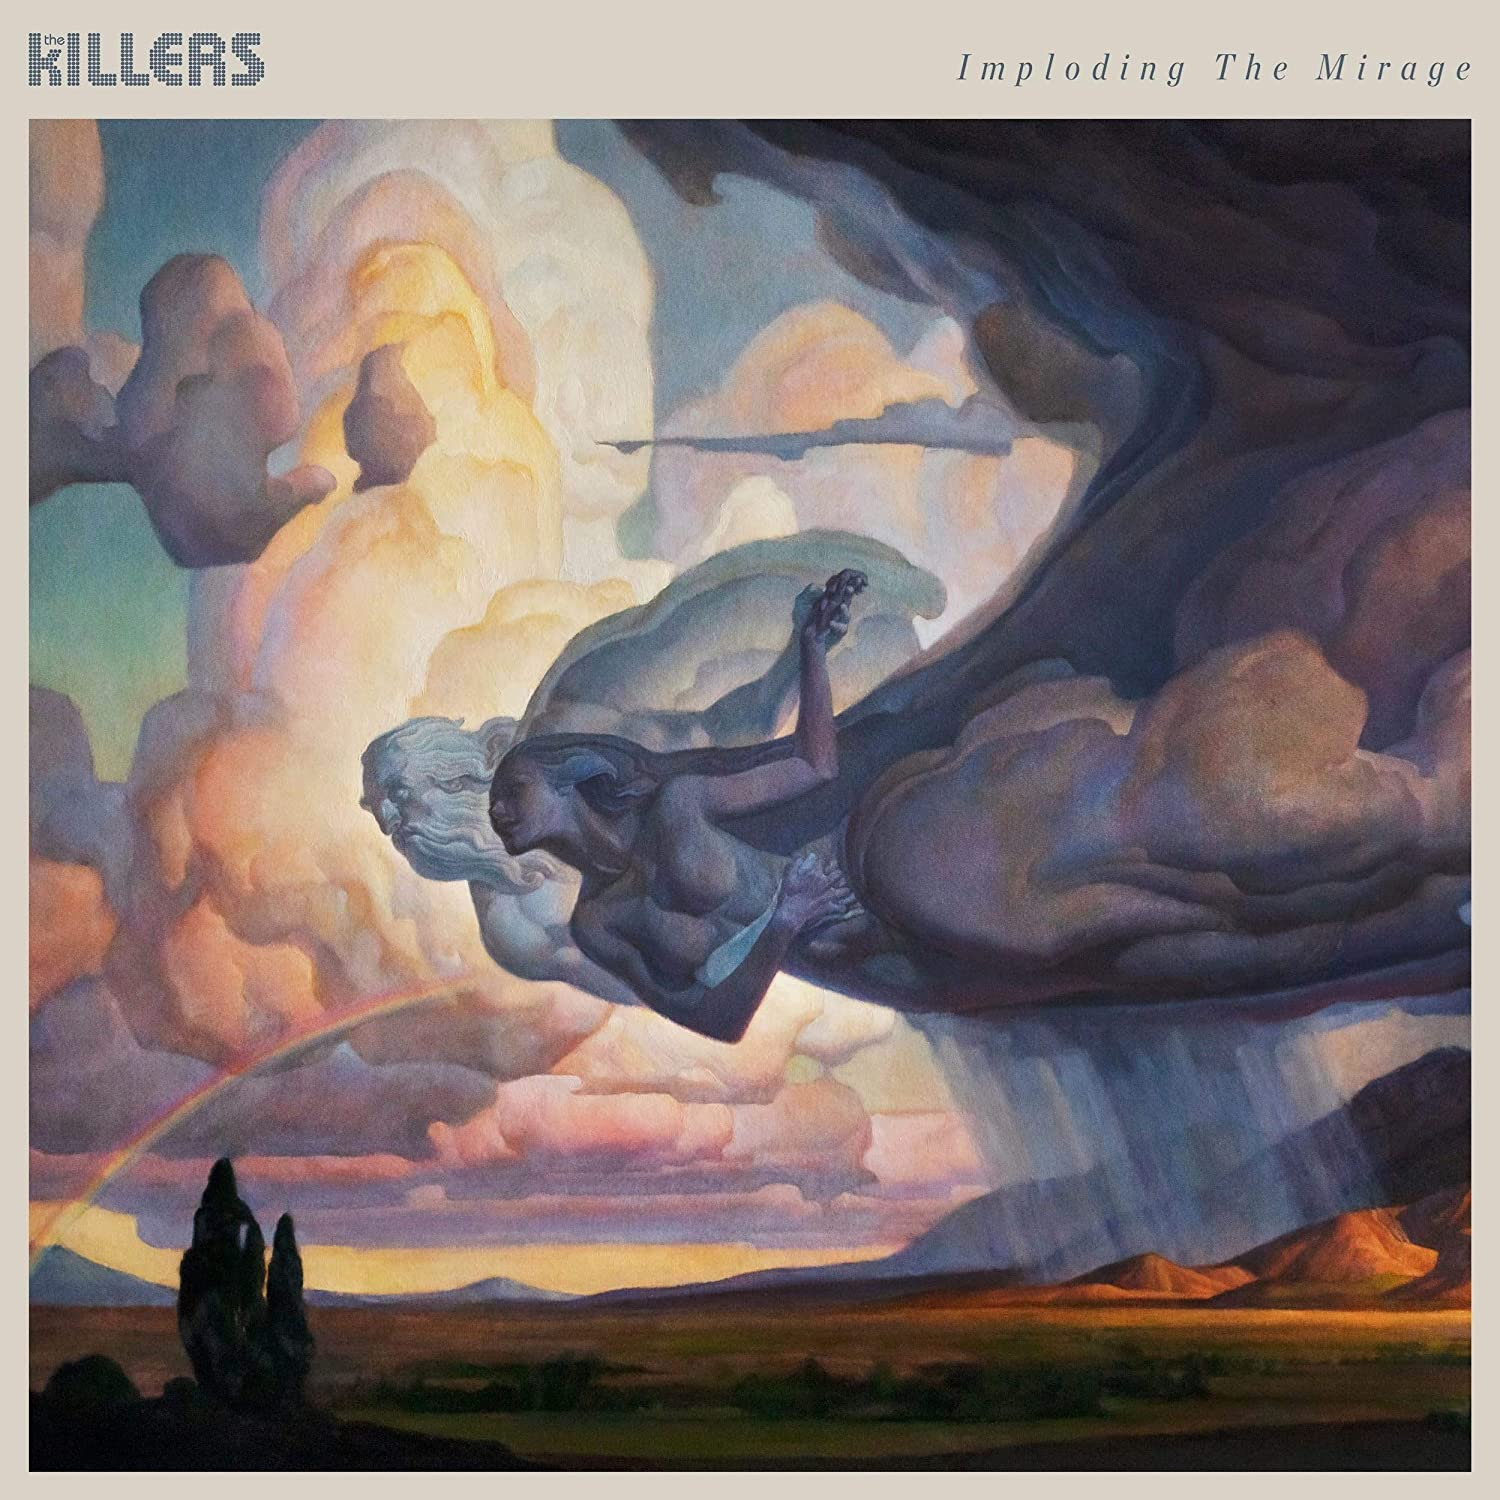 Imploding The Mirage : The Killers, The Killers: Amazon.es: CDs y vinilos}